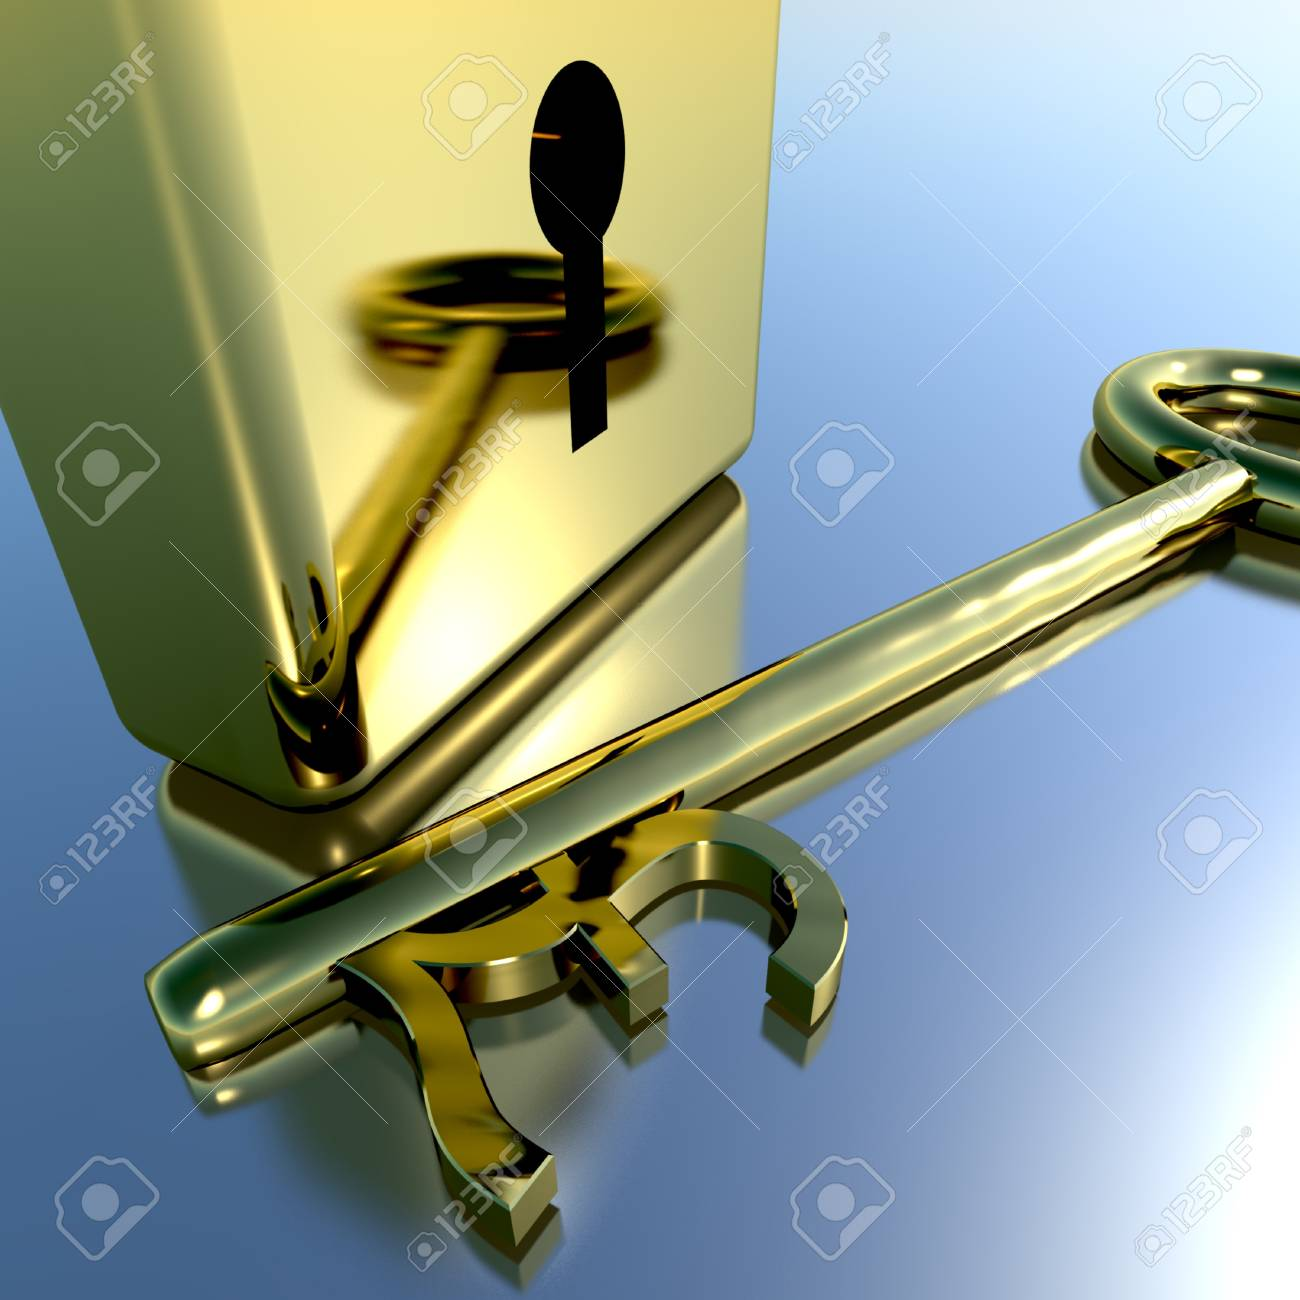 Pound Key With Gold Padlock Showing Banking Savings And Finances Stock Photo - 11948214